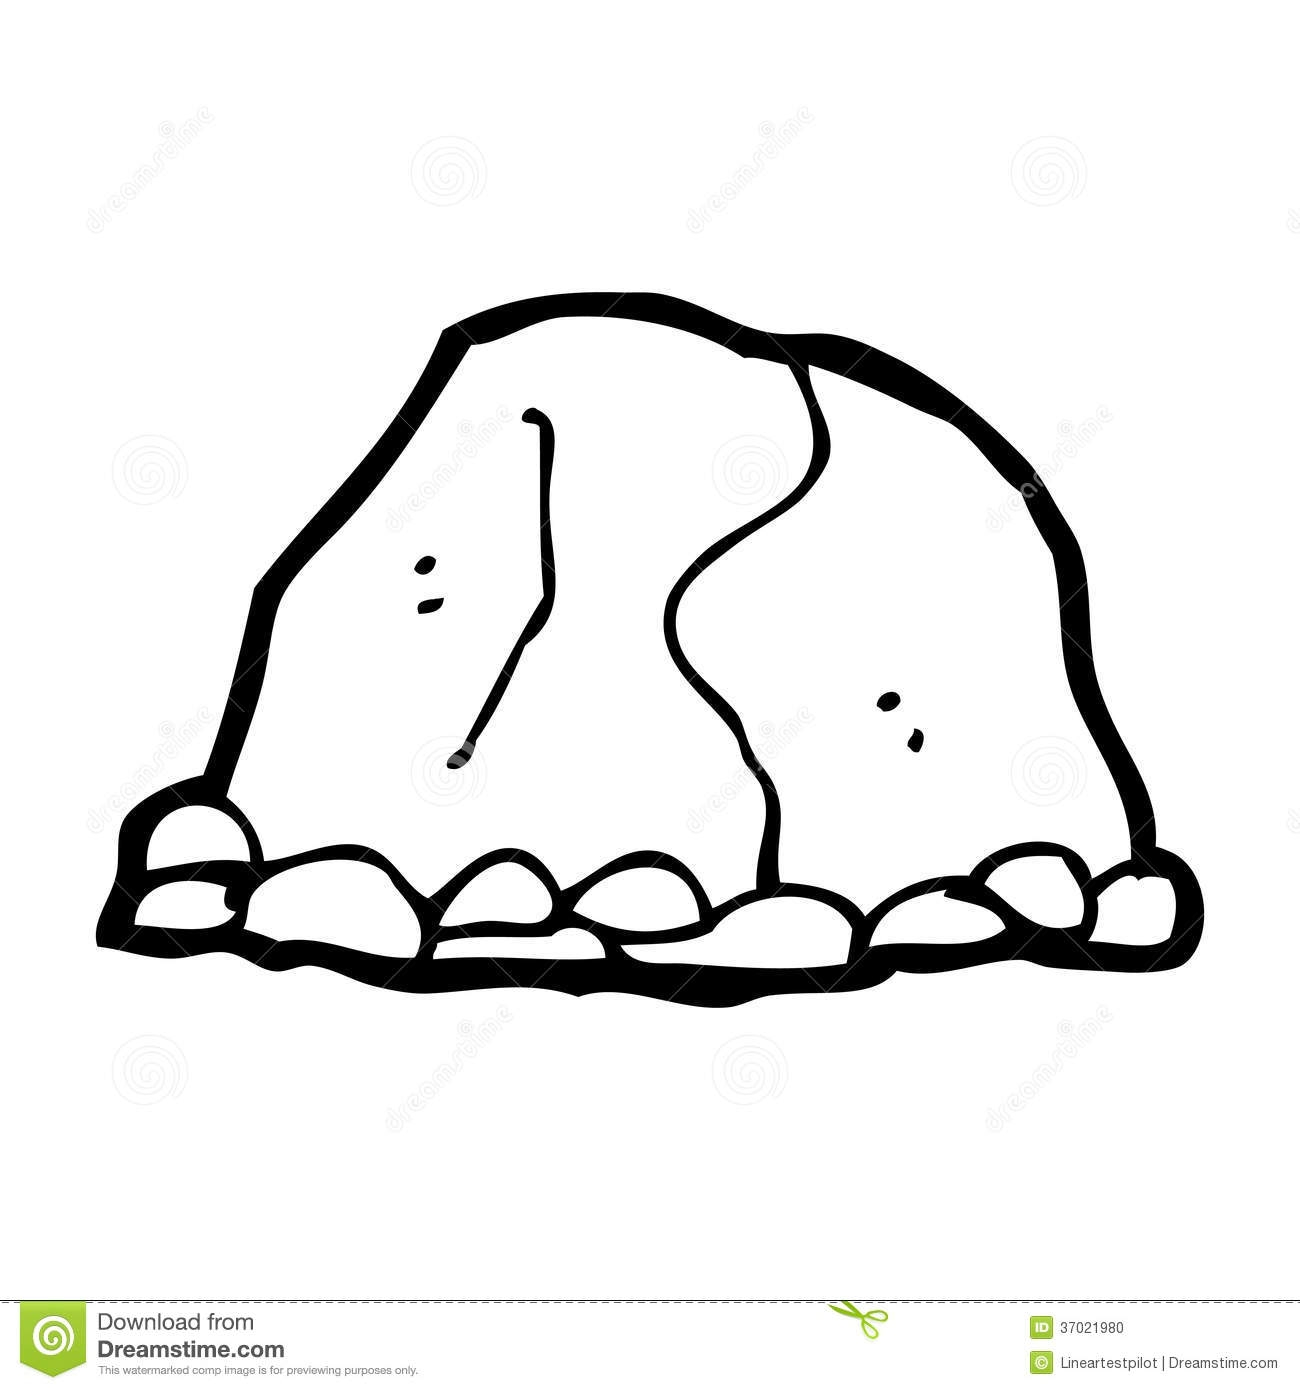 Rock clipart black and white Elegant Rock black and white.